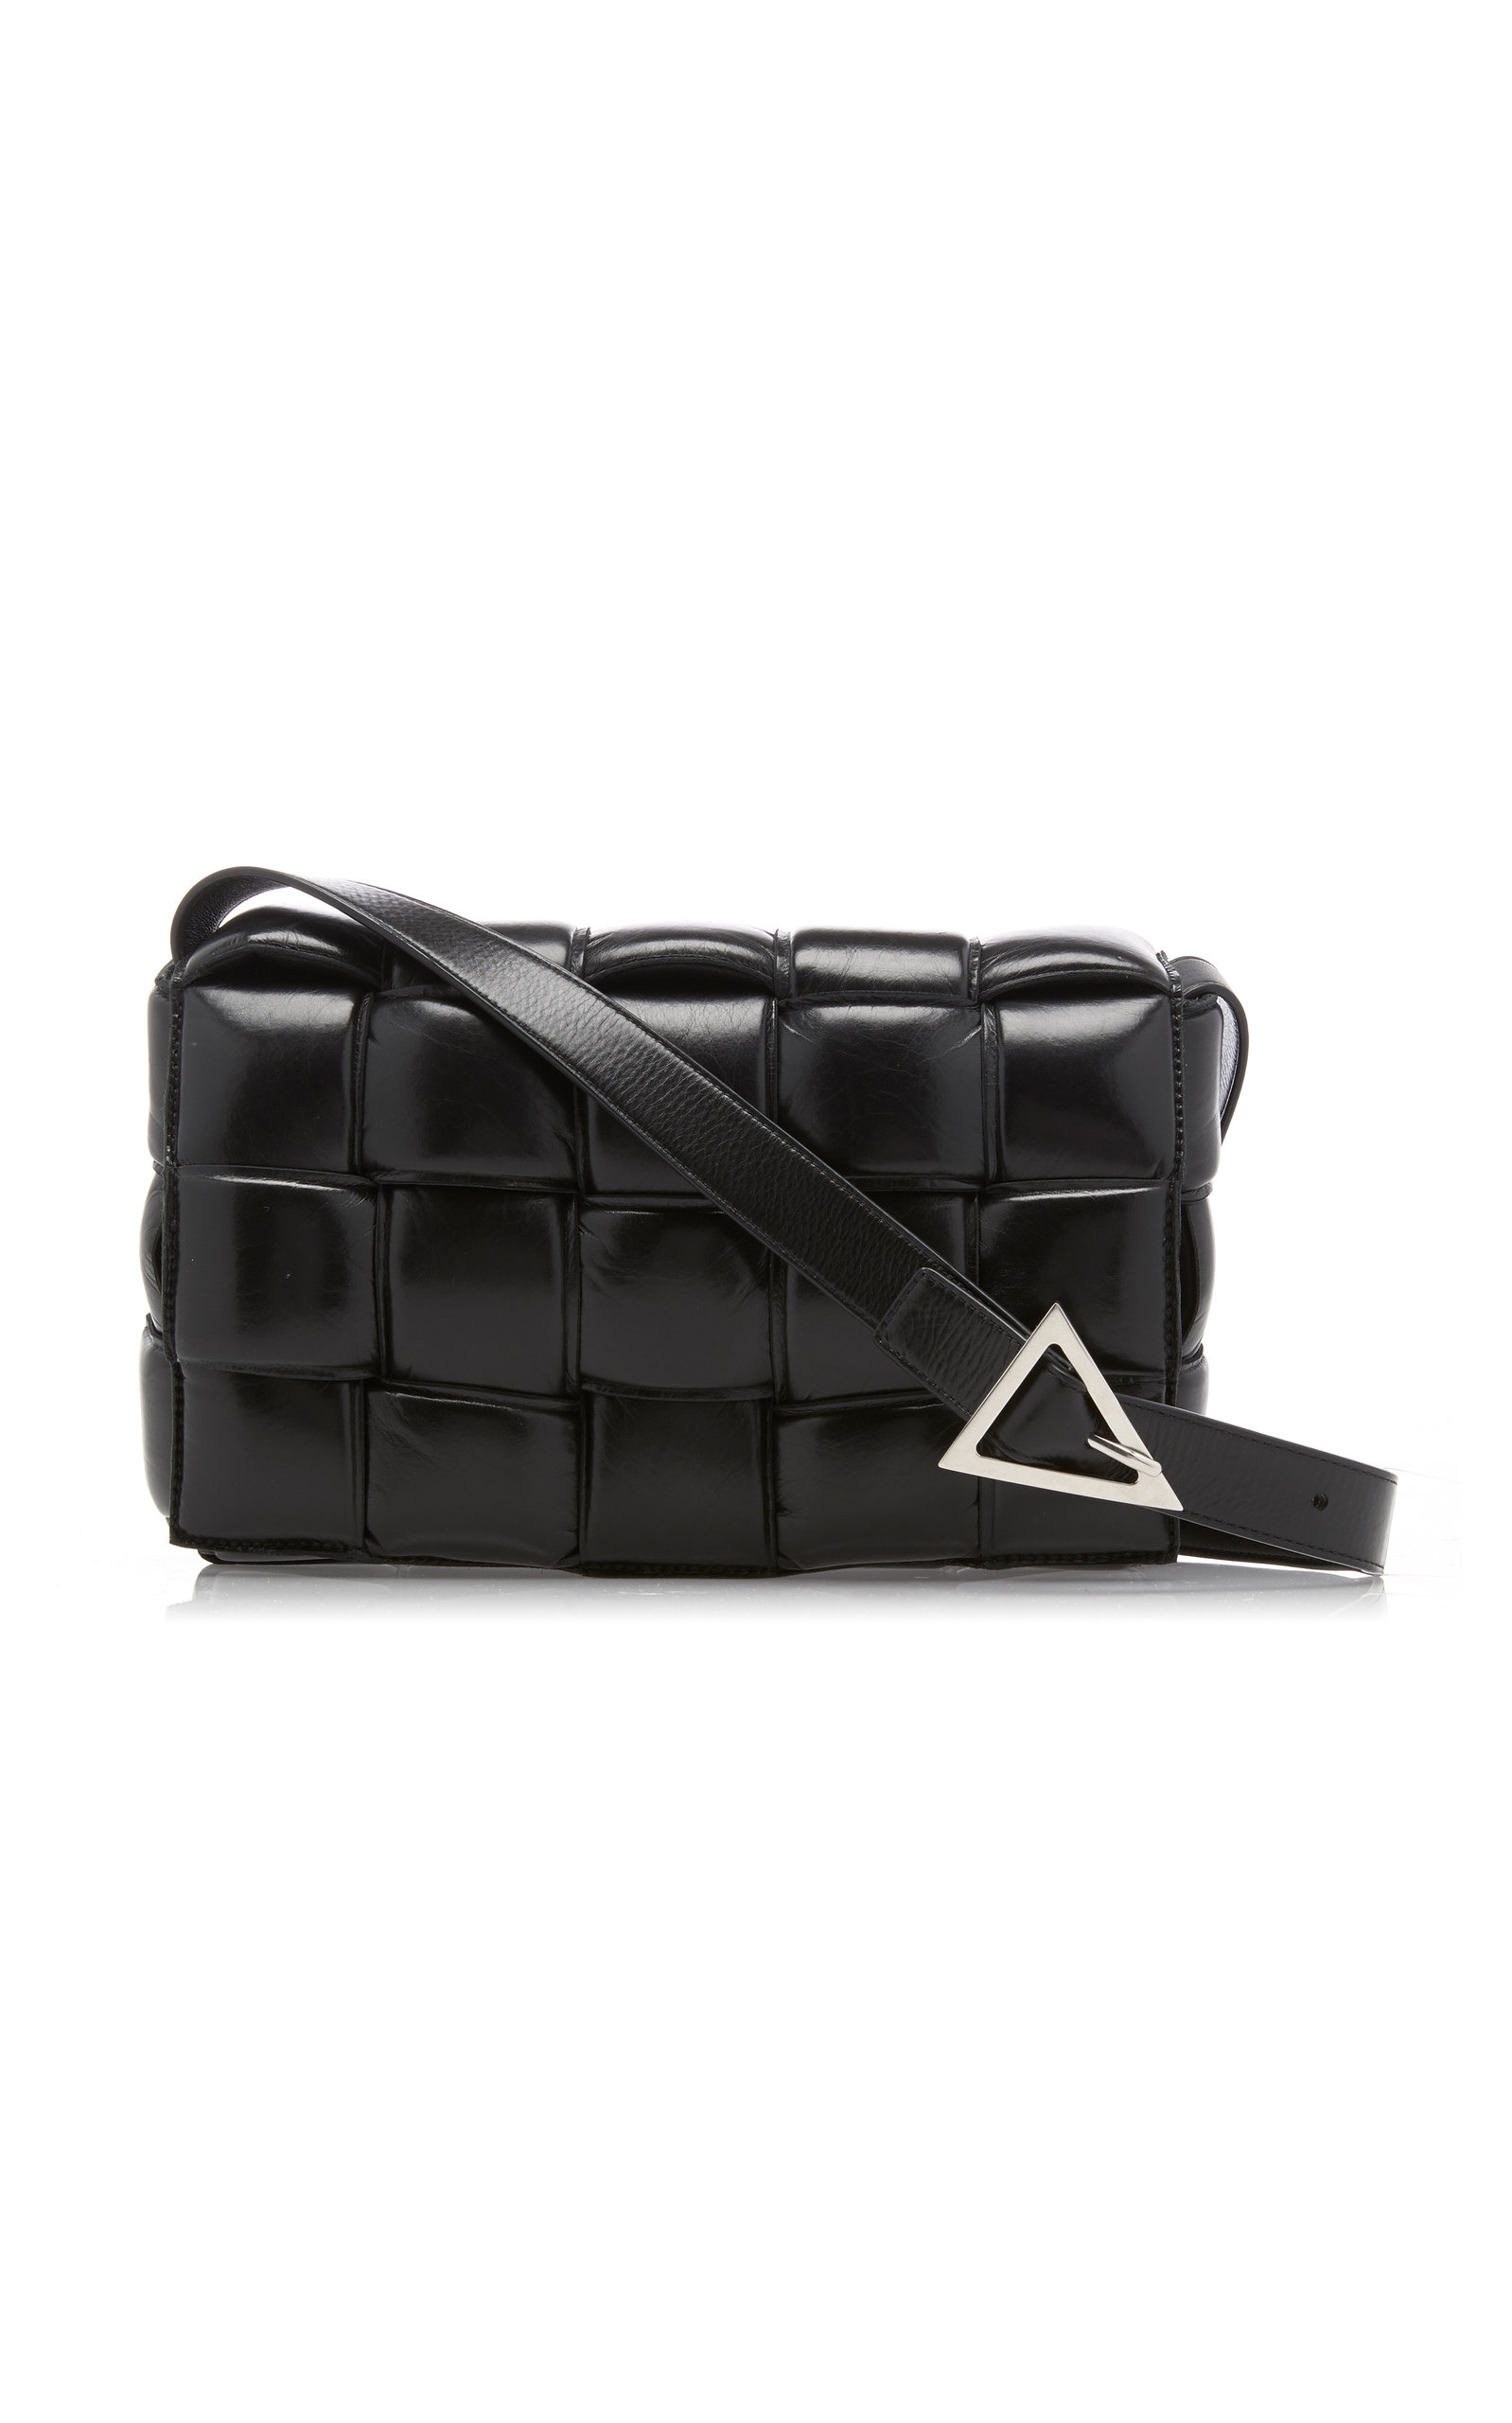 Intrecciato Patent Leather Shoulder Bag by Bottega Veneta